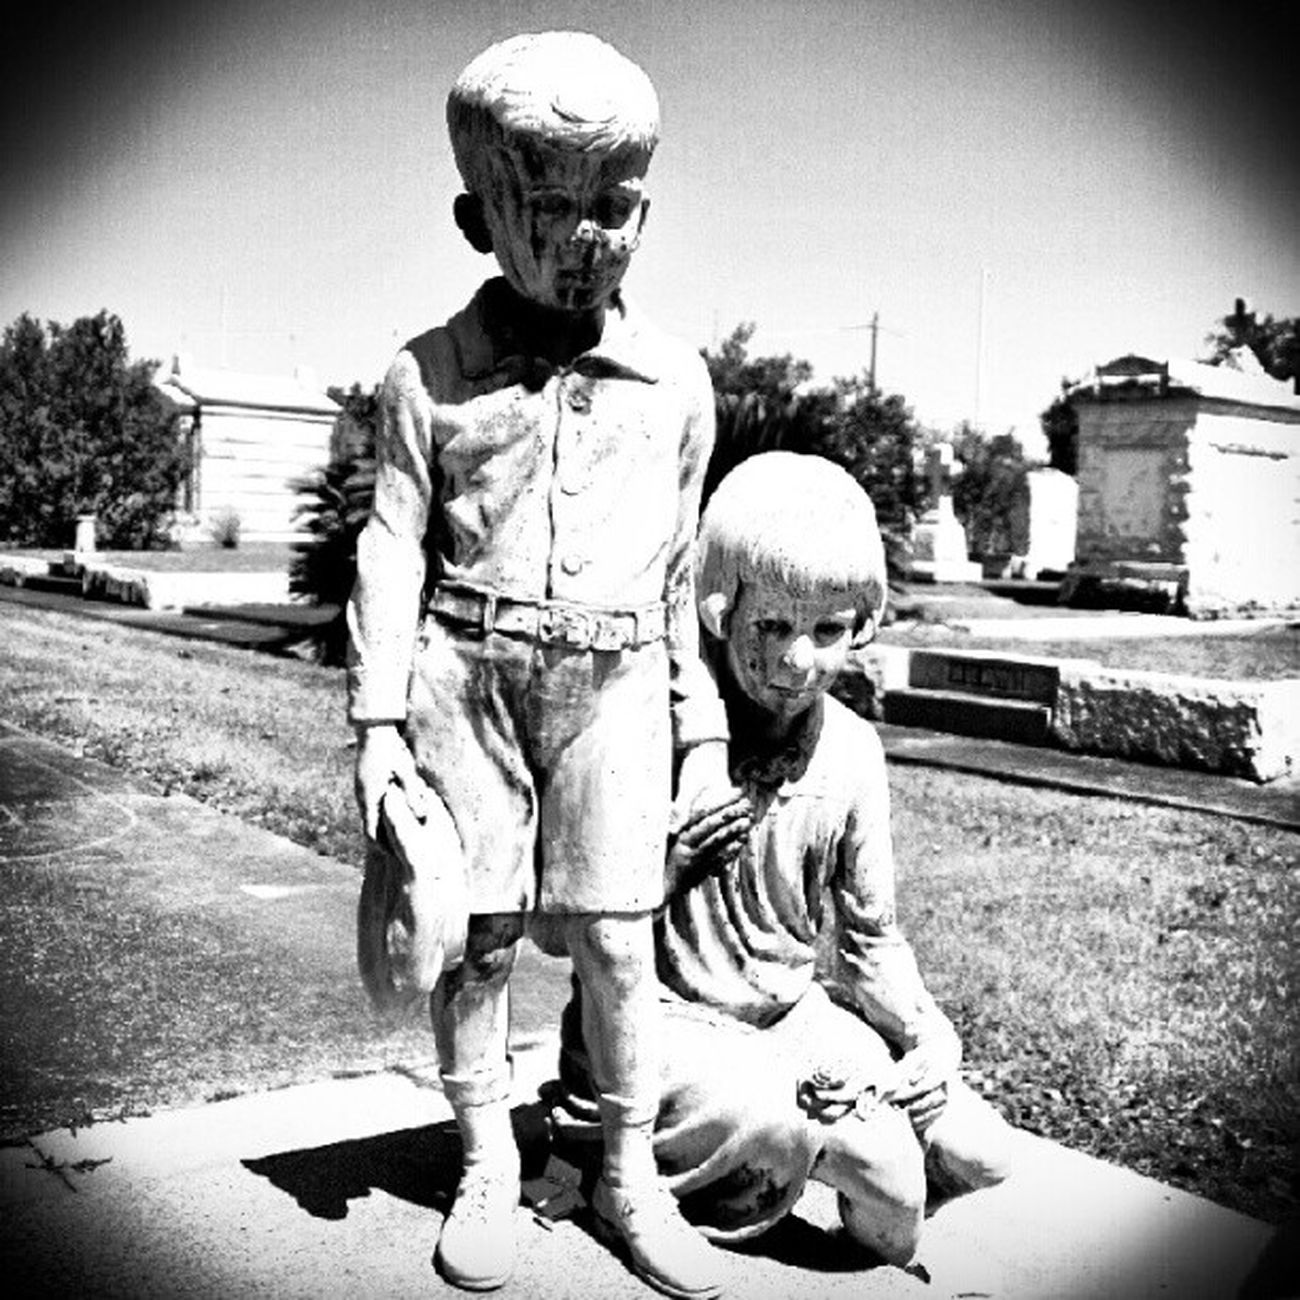 #cemetery #metairie #mausoleum #morning #nola #neworleans #grave #tombstone #tomb #sculpture #saveourcemeteries #children #child NOLA Tomb Neworleans Saveourcemeteries Metairie Morning Child Children Sculpture Cemetery Mausoleum Tombstone Grave